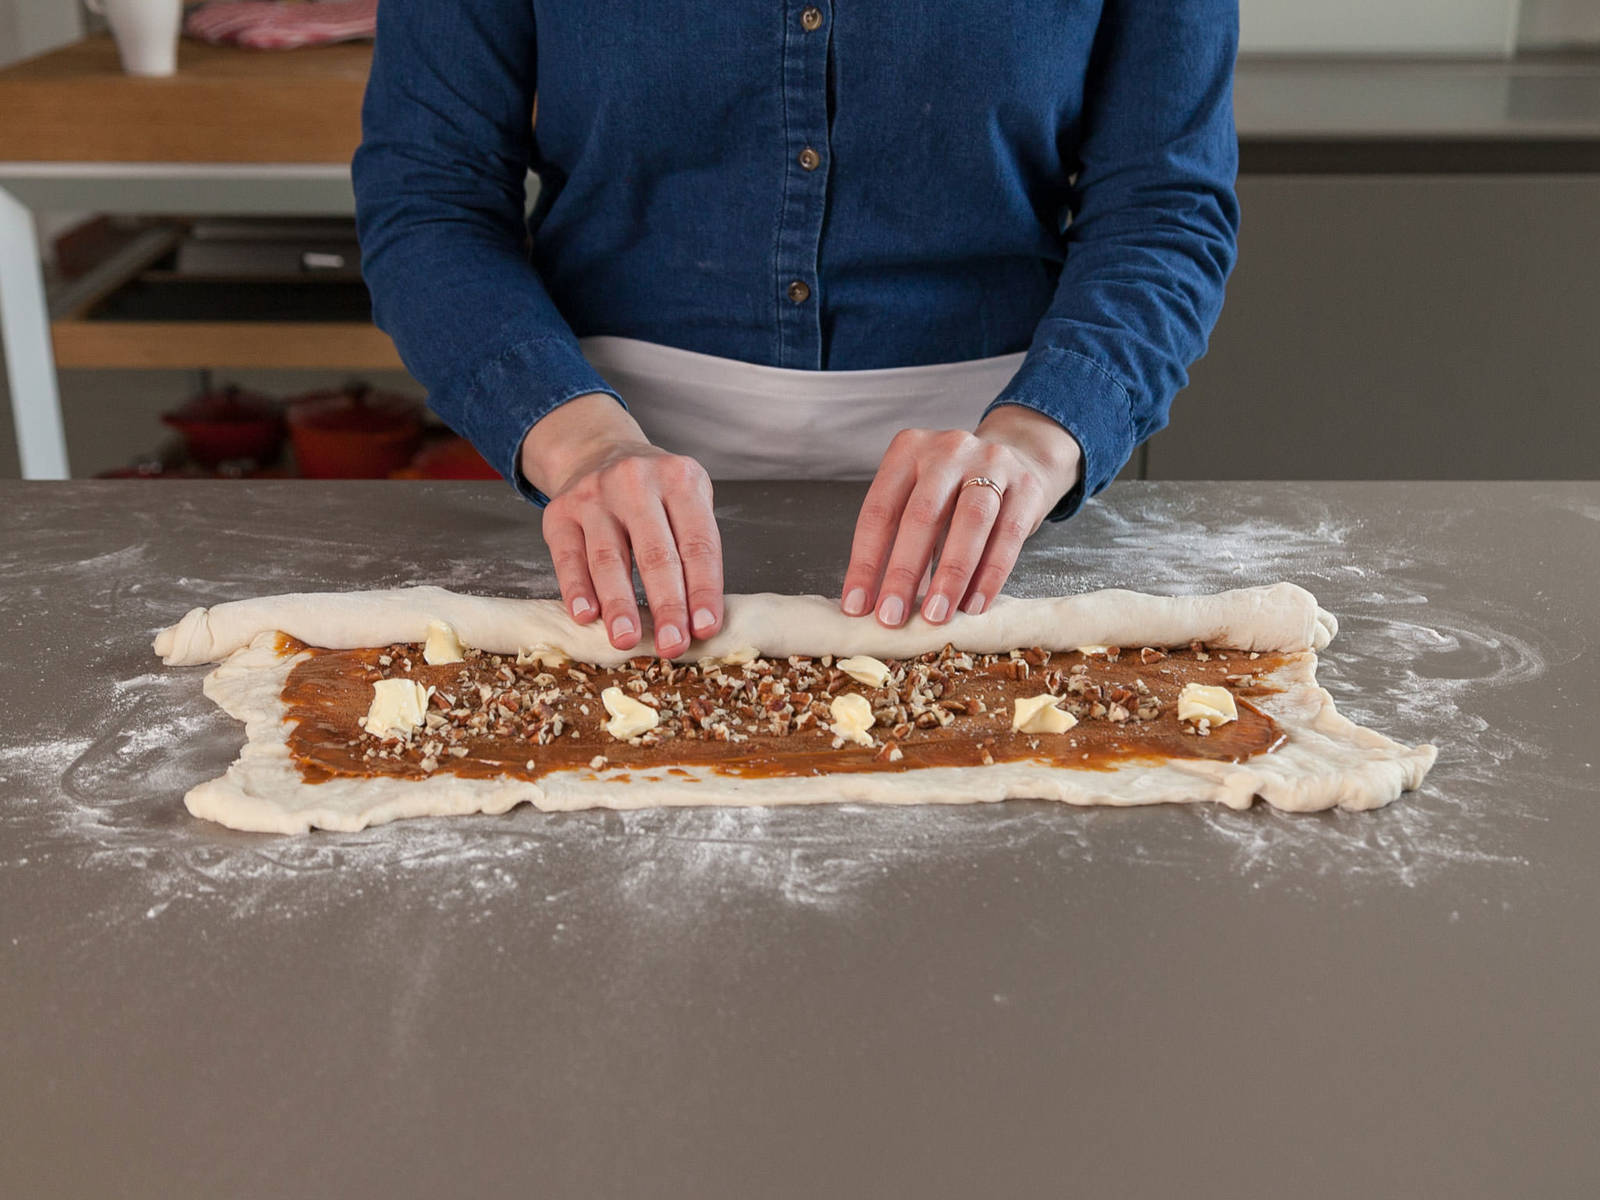 From the 35 cm/14 in. side of dough, roll up tightly to form a log. Seal edges with water.